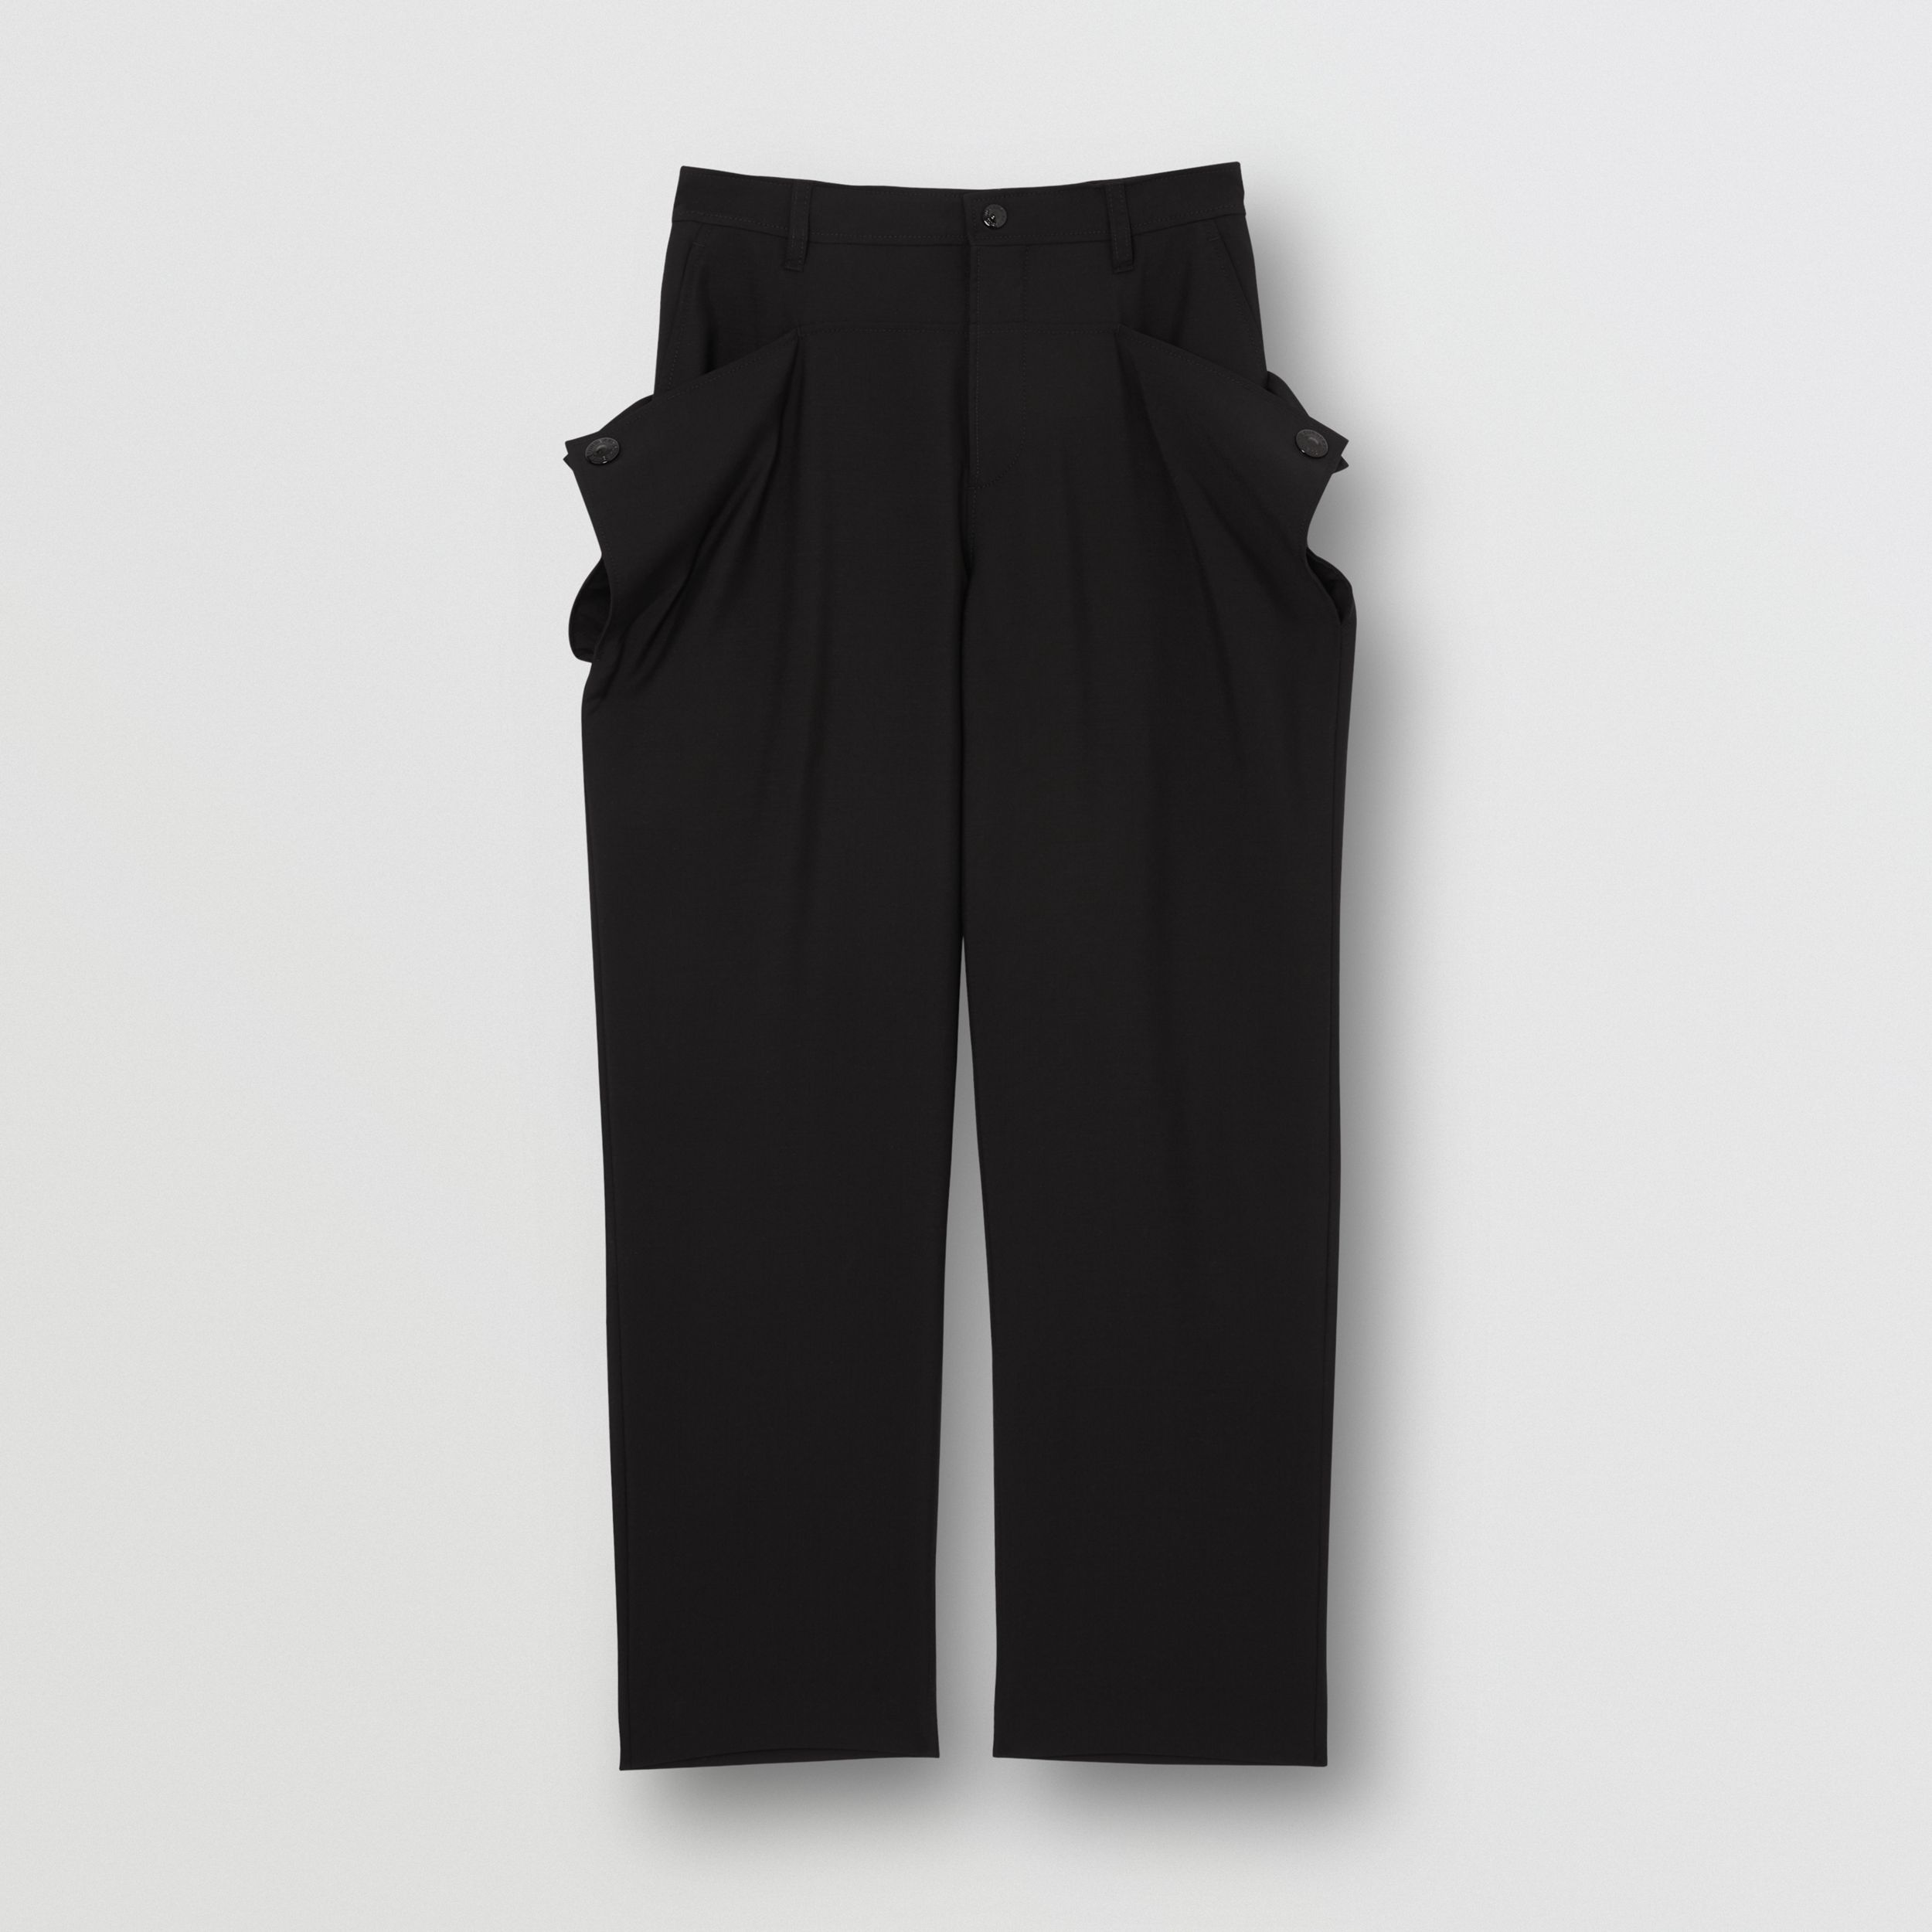 Press-stud Detail Mohair Wool Tailored Trousers in Black - Men | Burberry - 4